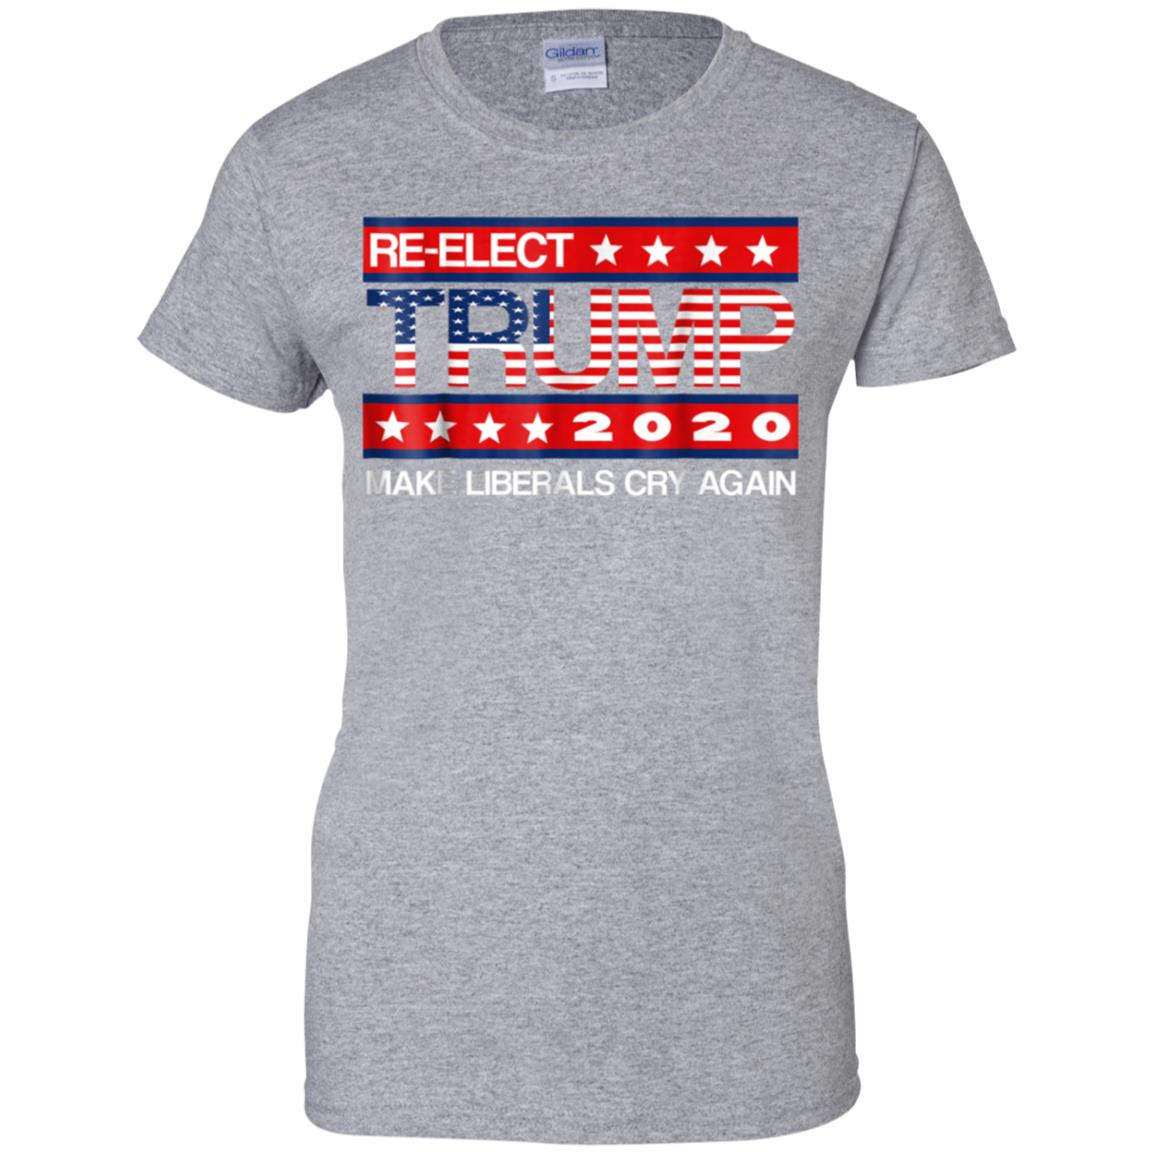 b28fae4d877 Awesome donald trump election 2020 make liberals cry again gop shirt ...